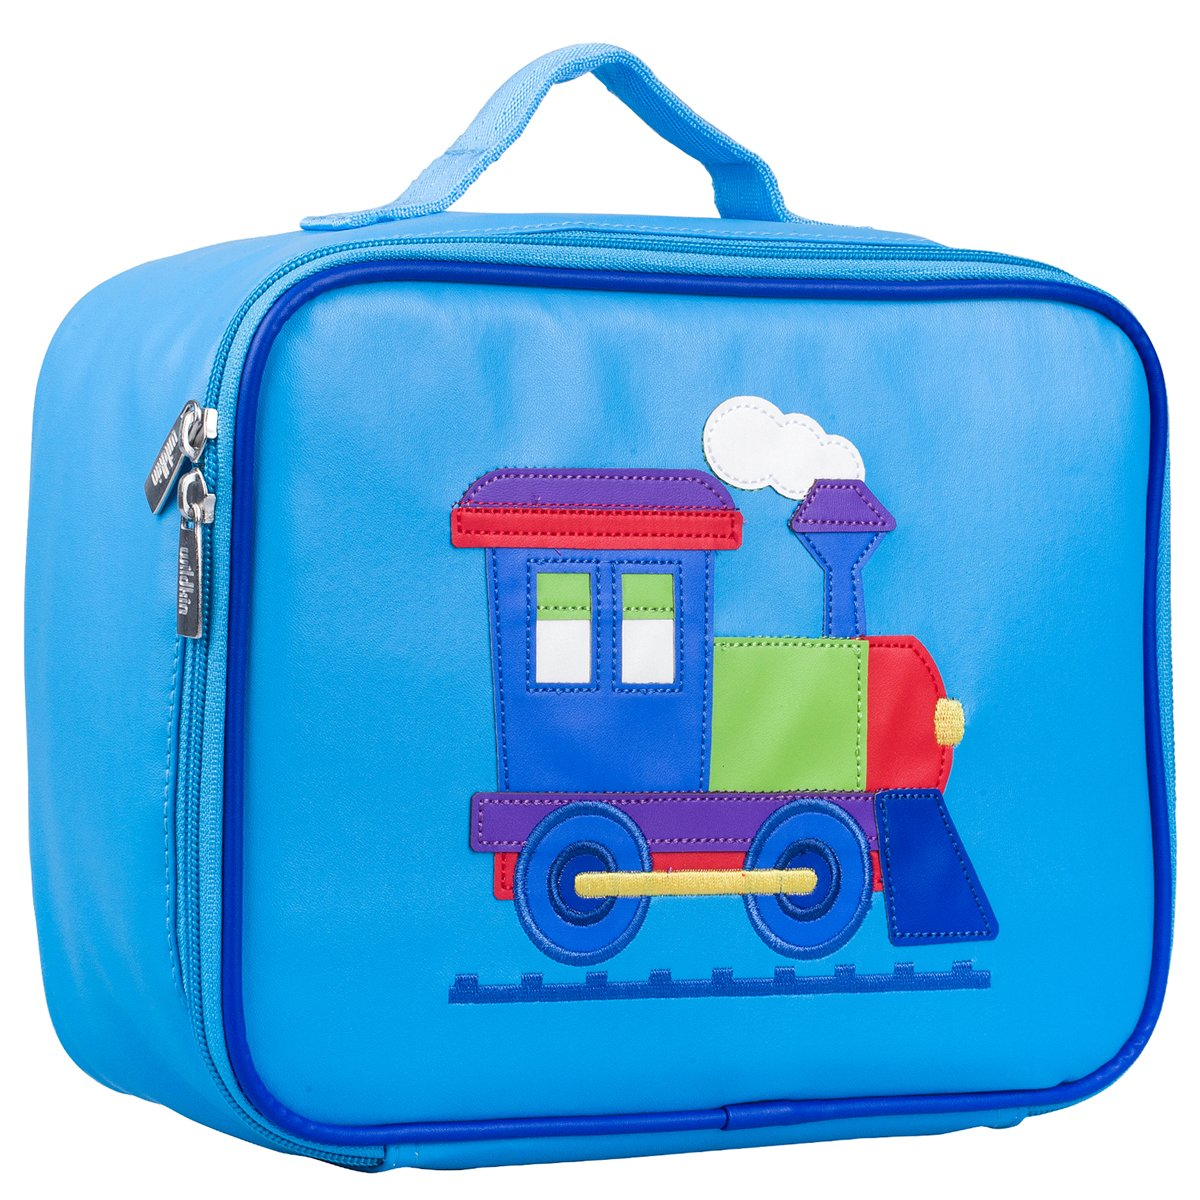 Insulated Ages 3+ Perfect for Kids and Easy to Clean with Helpful Extras for Quick and Simple Organization Embroidered Lunch Box Moisture Resistant Wildkin Embroidered Lunch Box Train